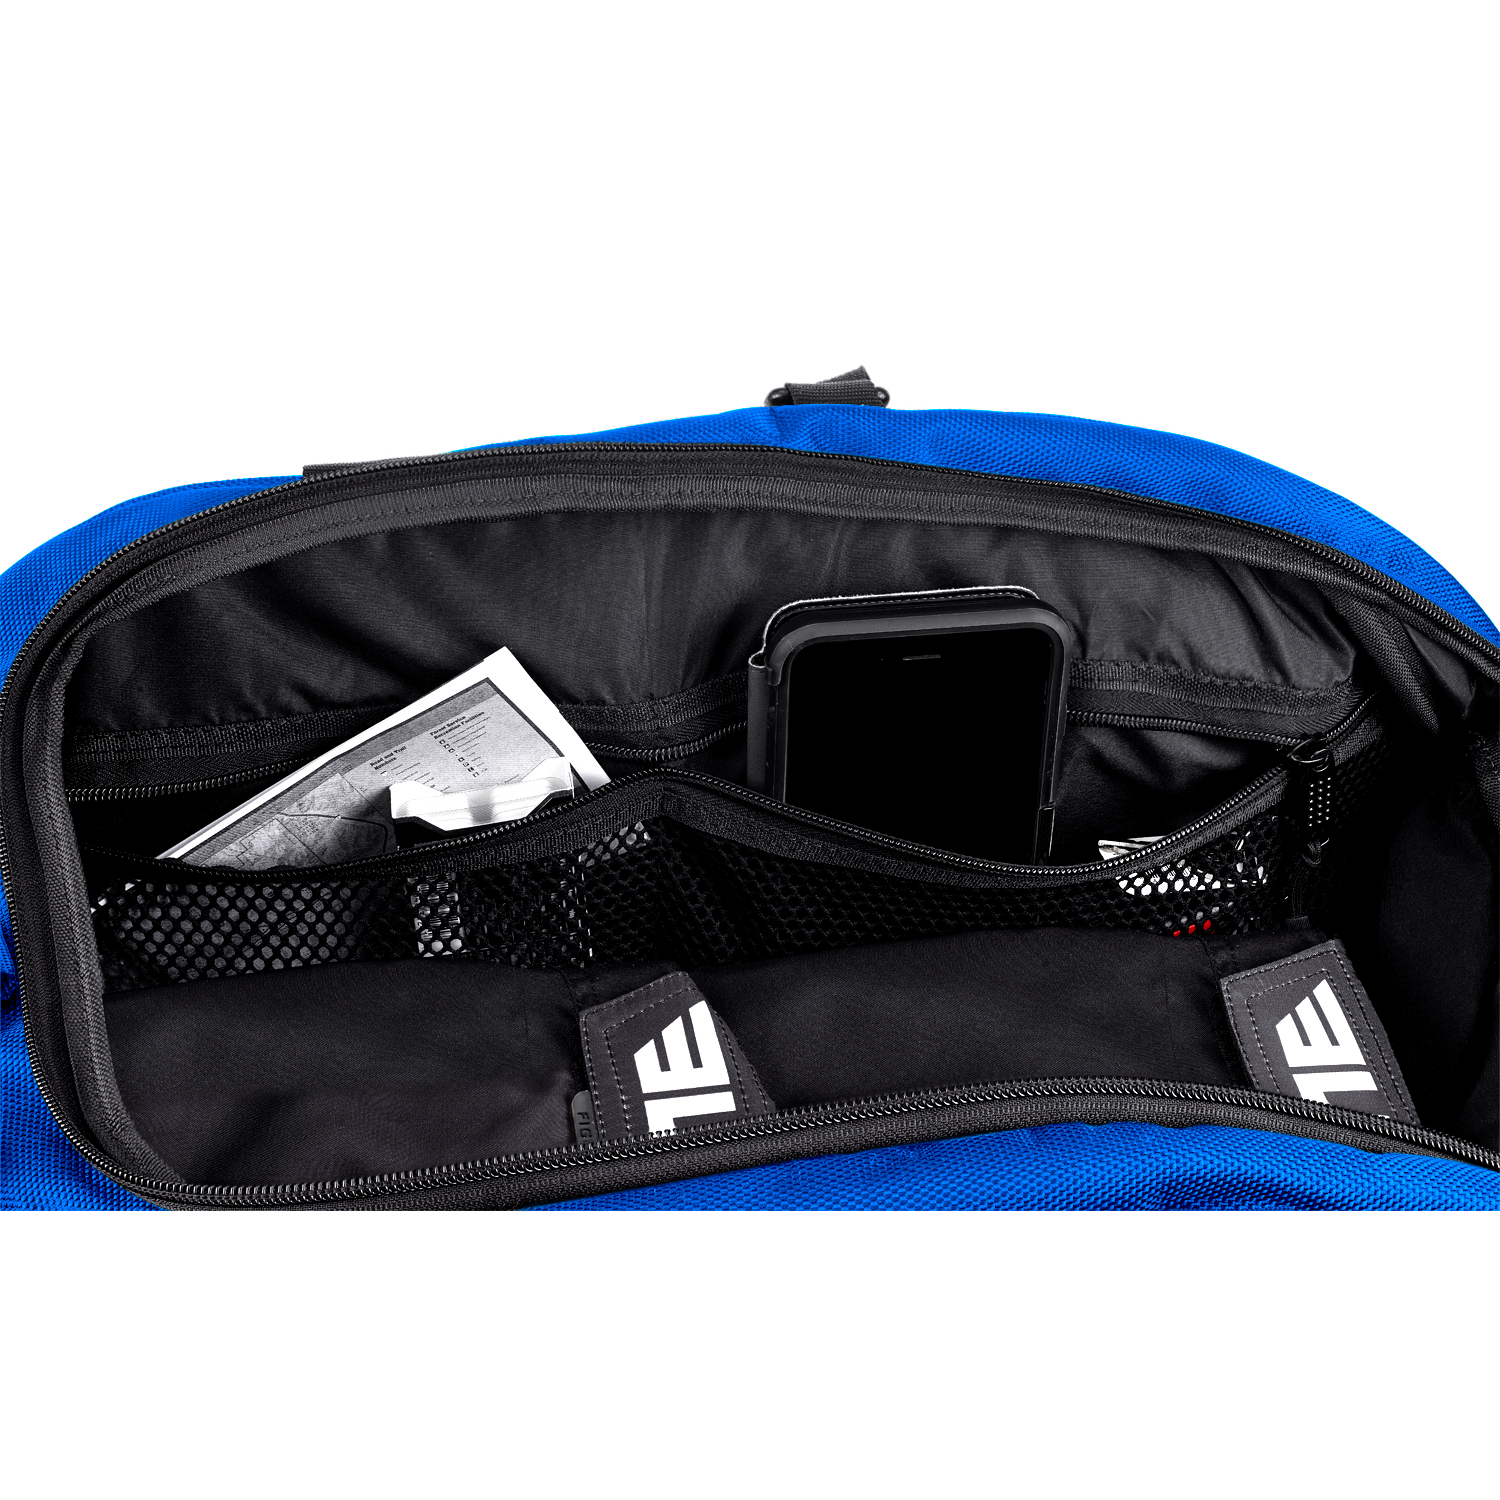 Load image into Gallery viewer, Elite Sports Warrior Series Blue Medium Duffel Training Gear Gym Bag & Backpack